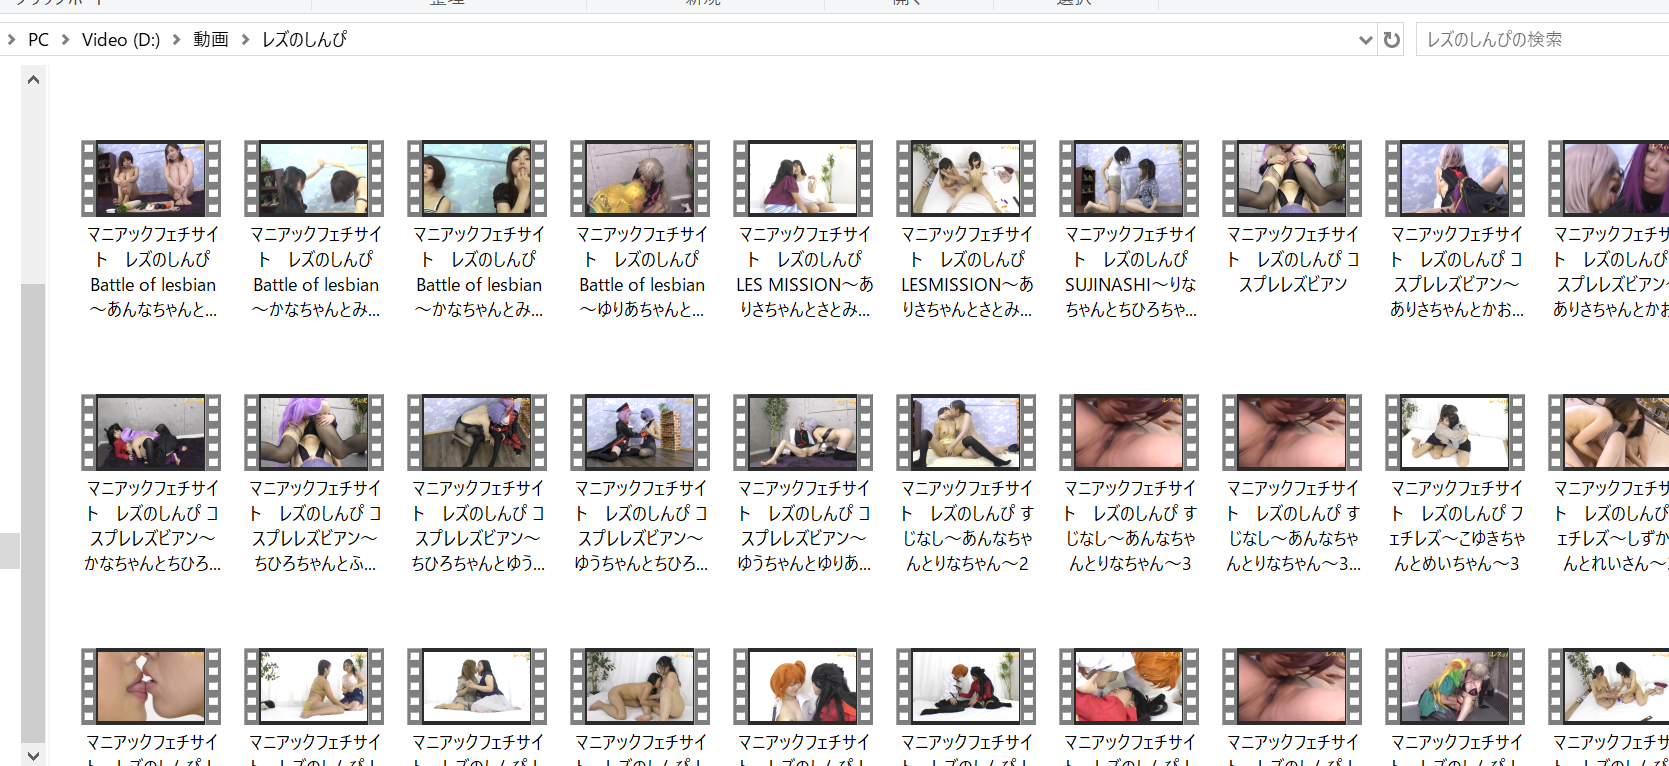 the uncensored JAV lesbian porn videos I downloaded from the Lesshin.